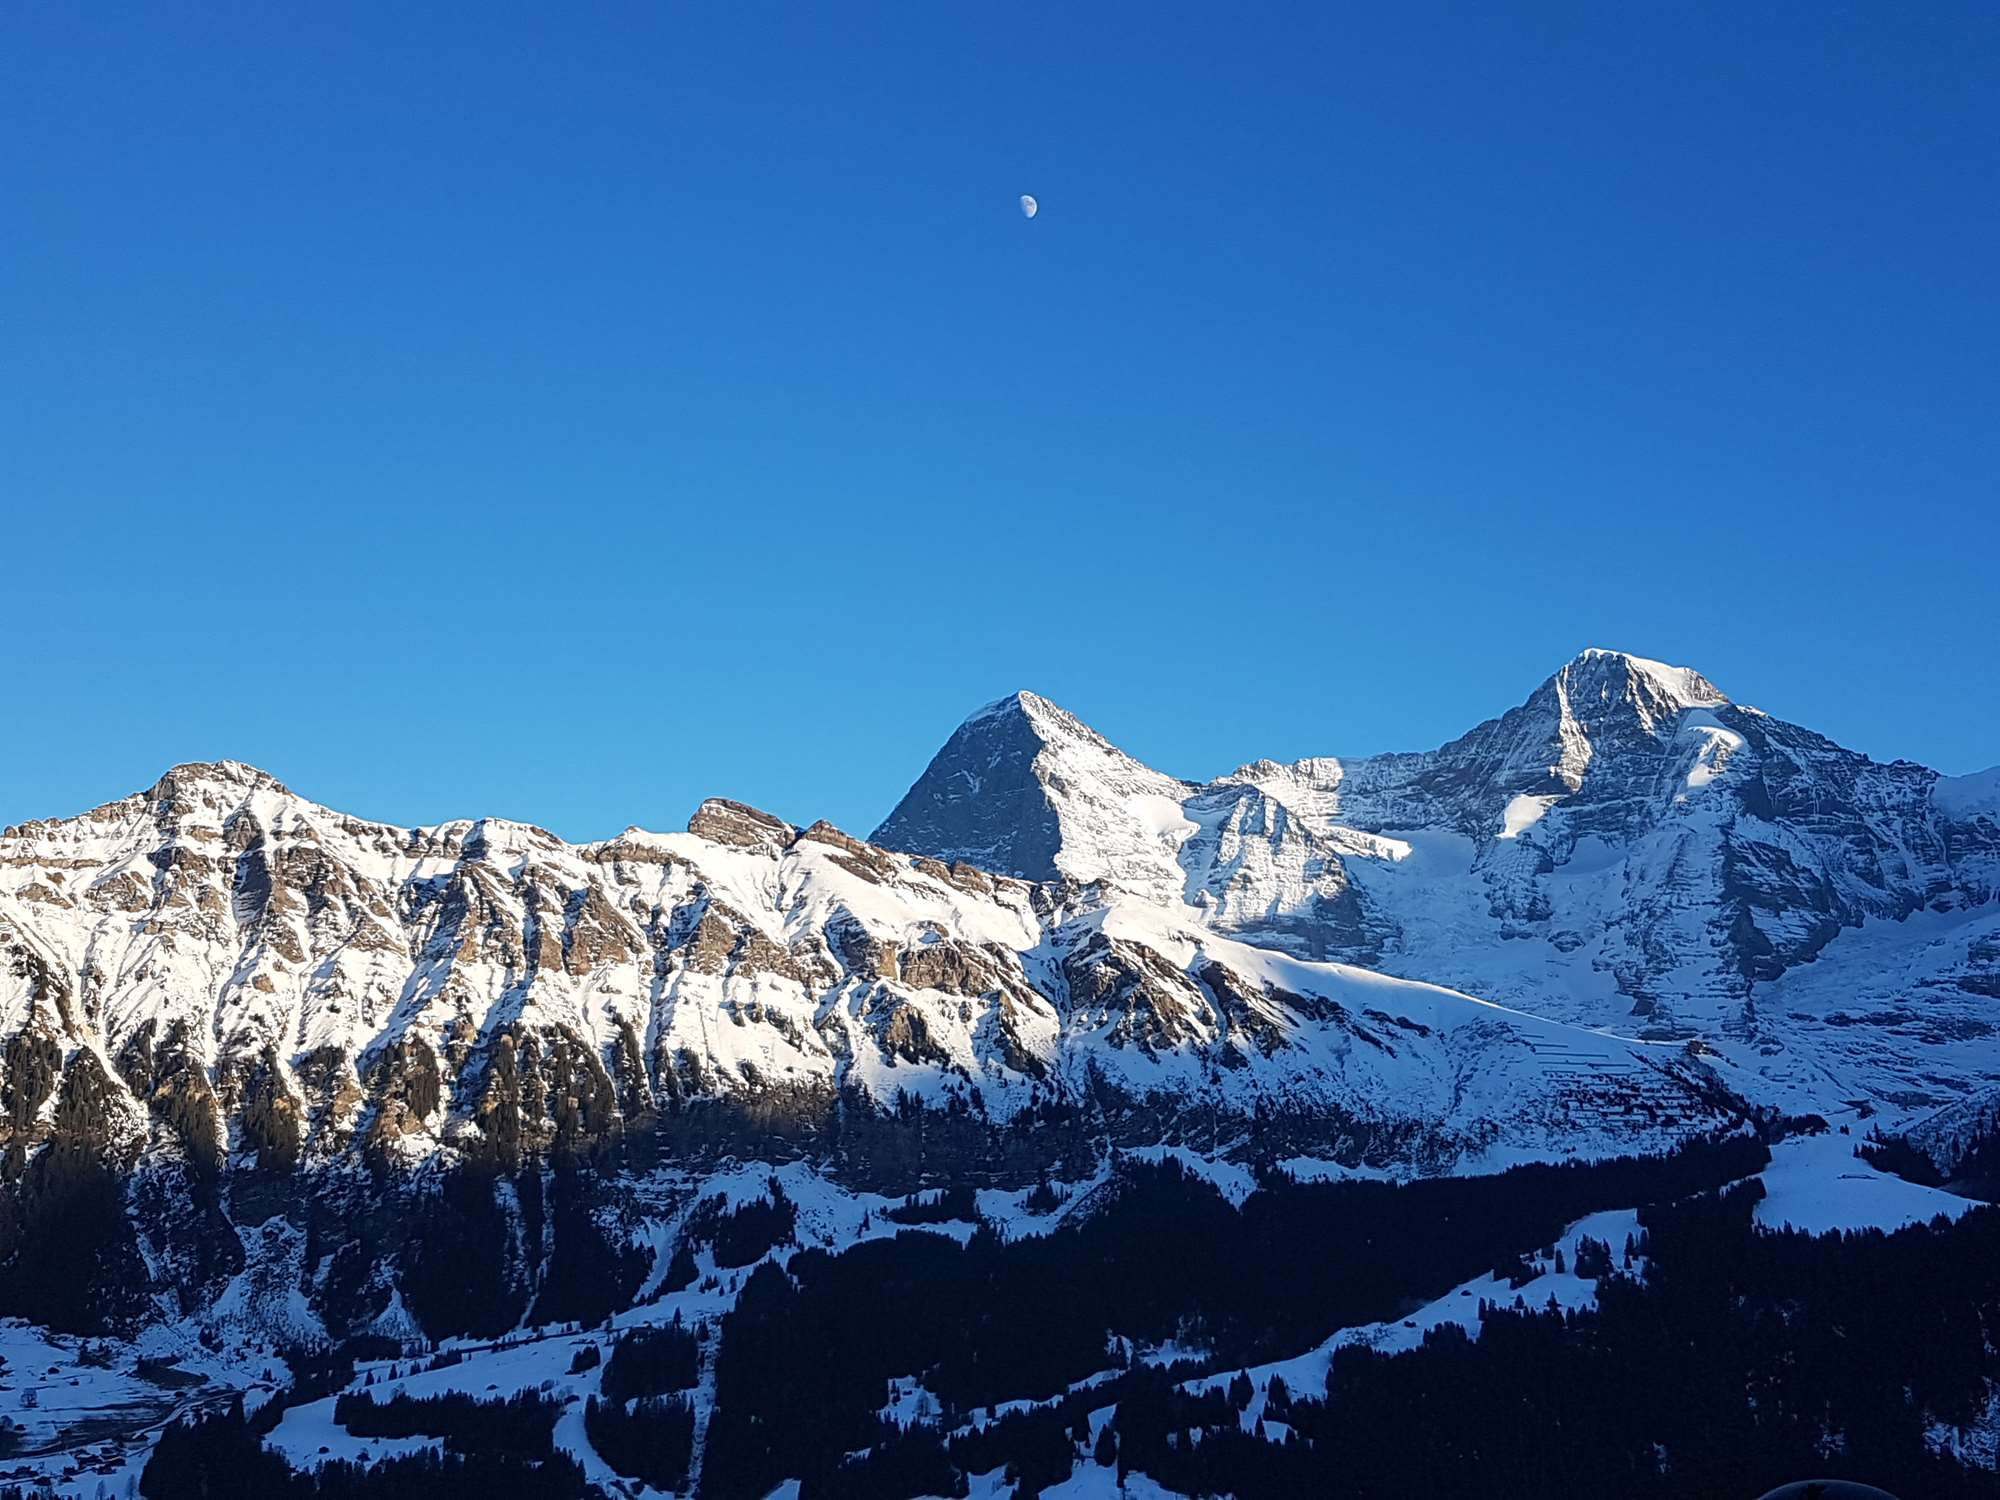 View of the Moon above the Eiger